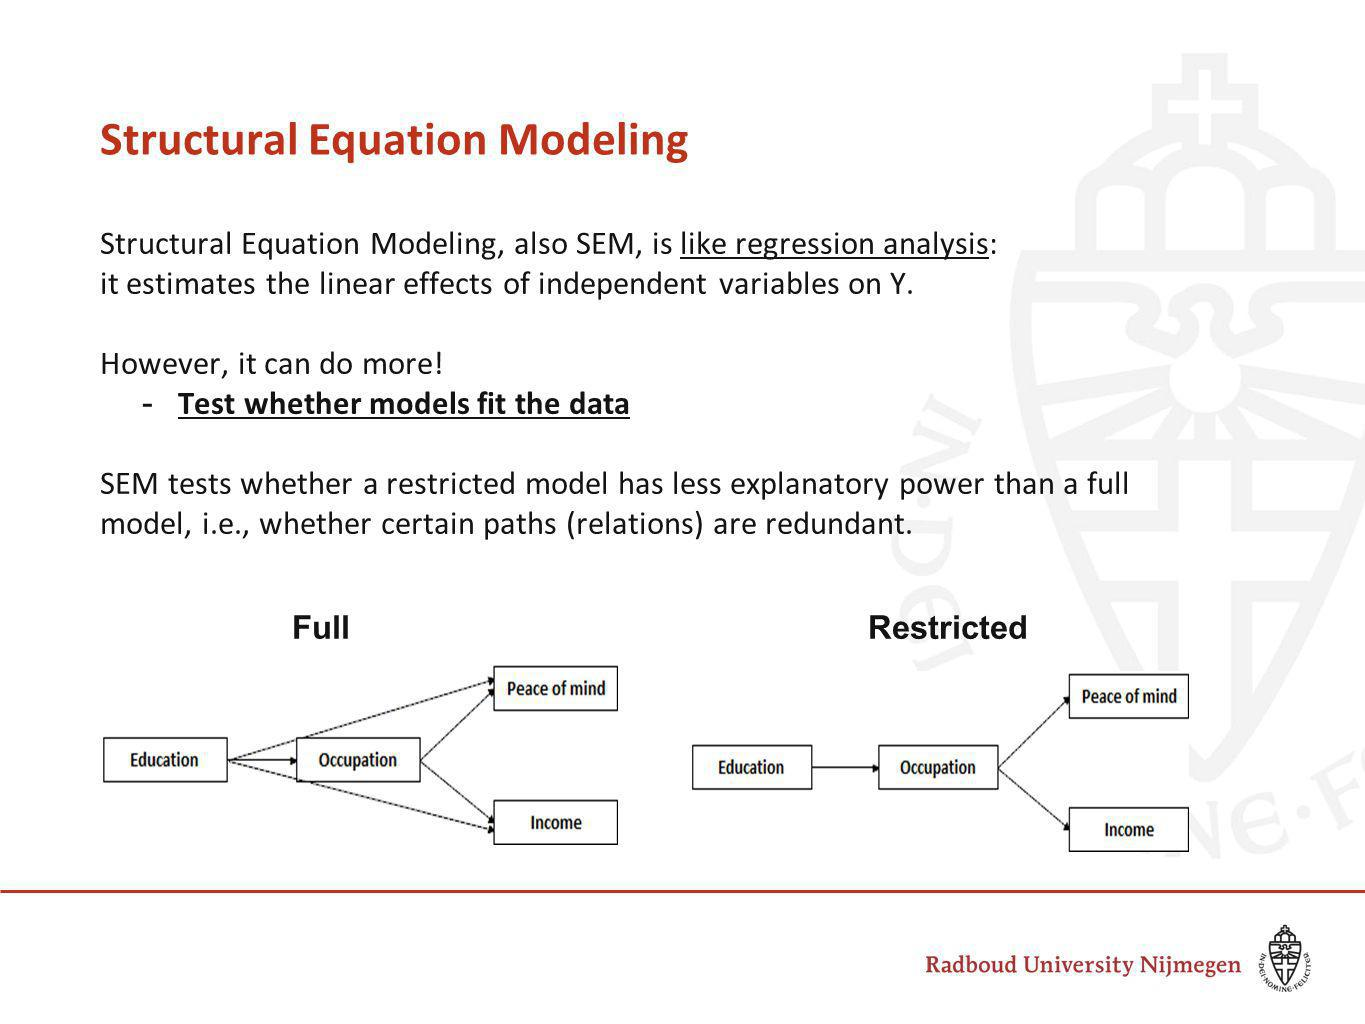 Structural Equation Modeling Structural Equation Modeling, also SEM, is like regression analysis: it estimates the linear effects of independent variables on Y.